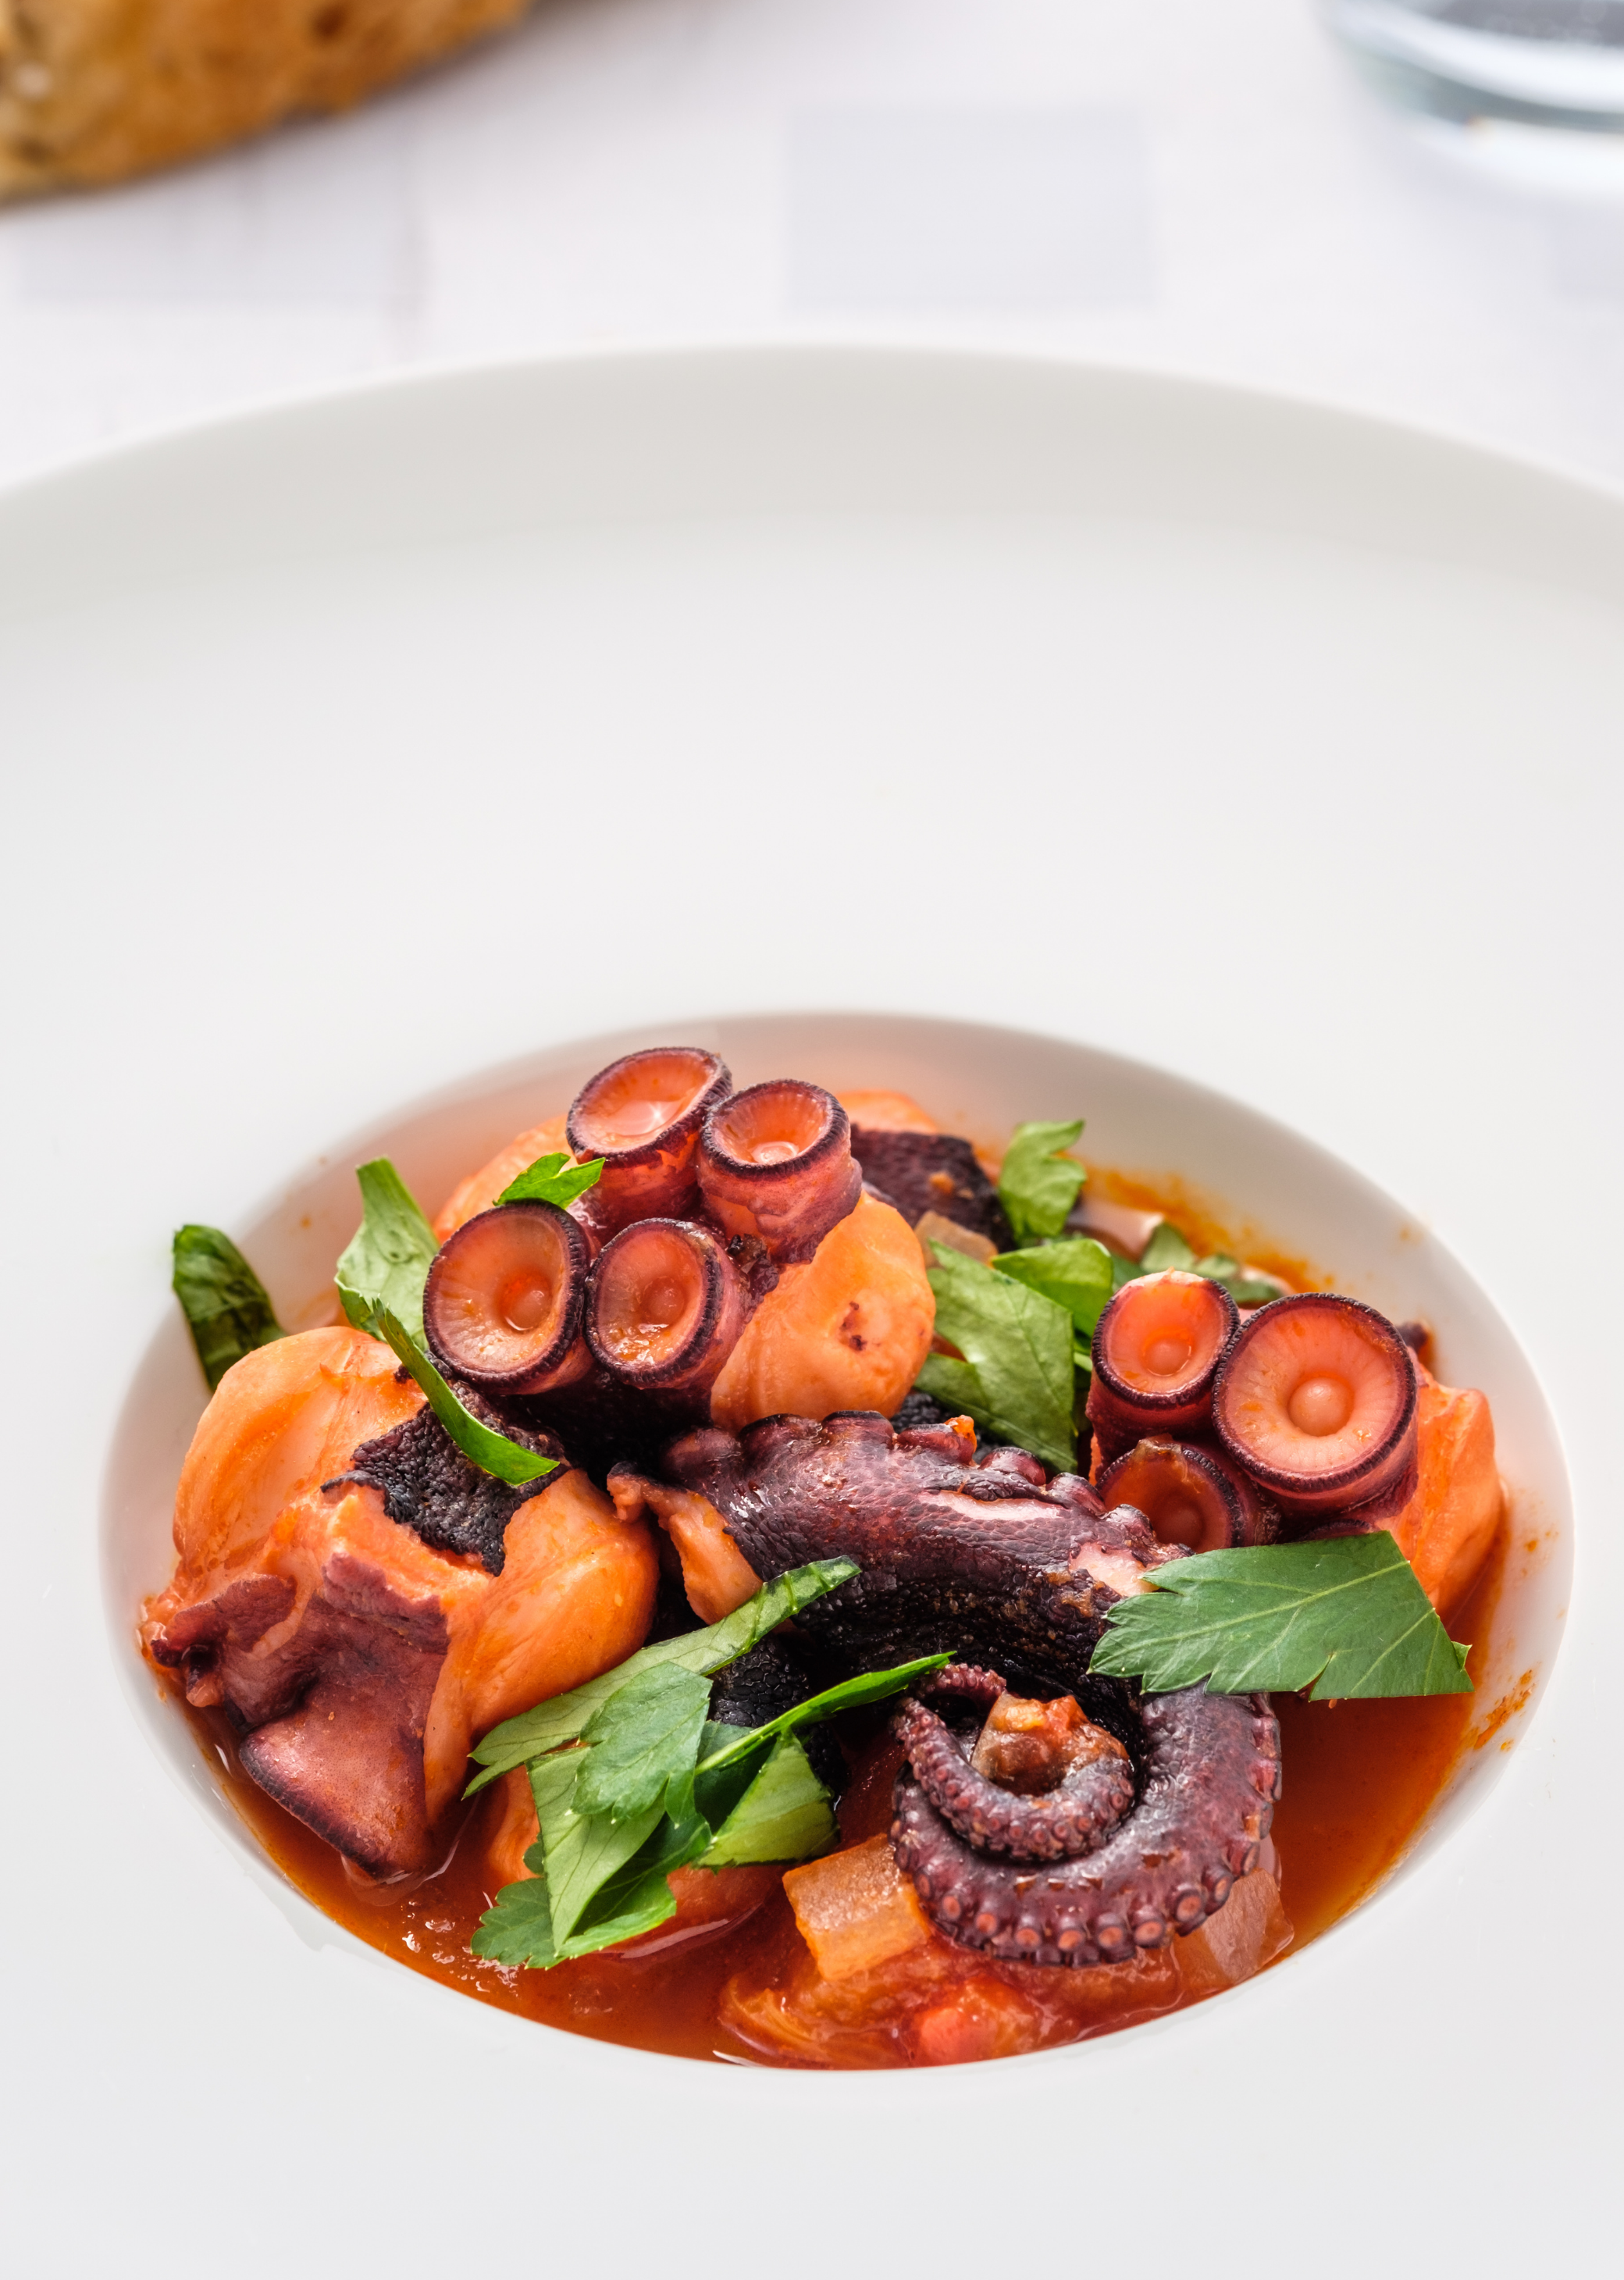 Octopus Stew Recipe, Health Benefits, Nutritional Value and More